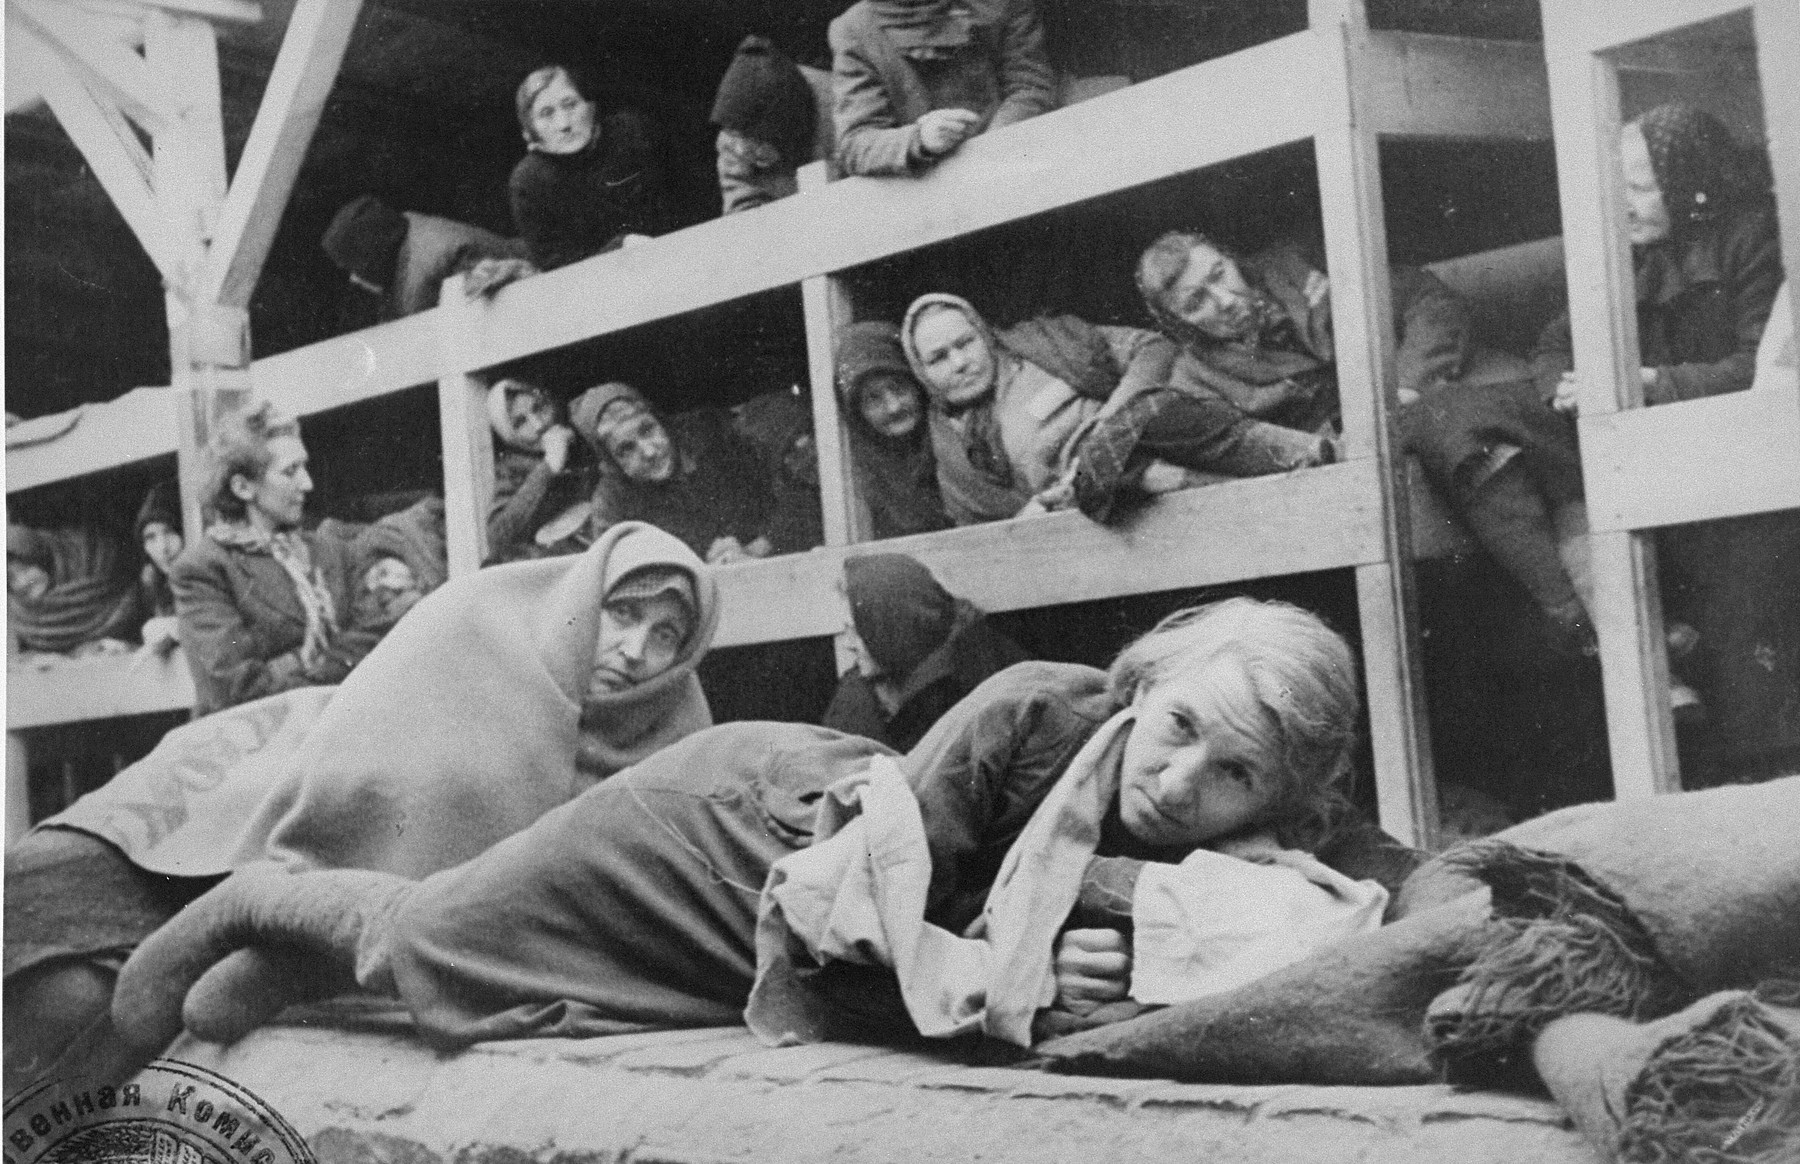 Women in the barracks of the newly liberated Auschwitz concentration camp.  Pictured on the far left, wearing a scarf, is Rivka Ruchle Chencinska (nee Krause).  STILL PHOTOGRAPH FROM THE SOVIET FILM of the liberation of Auschwitz, taken by the film unit of the First Ukrainian Front.